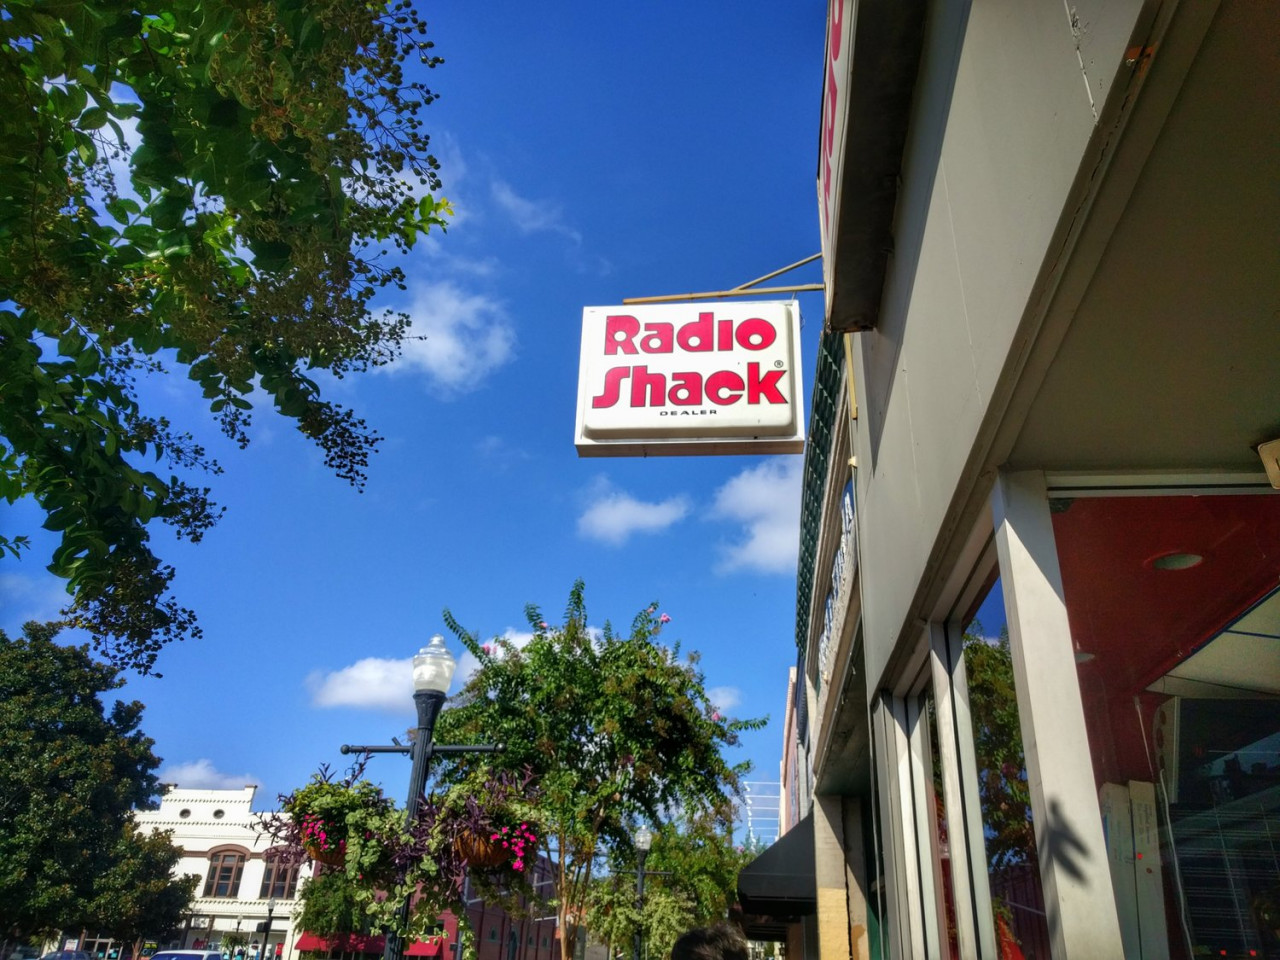 The Radio Shack is right next door to Melvald's. Believe it or not, this 80s sign is actually real and not a prop for the show!